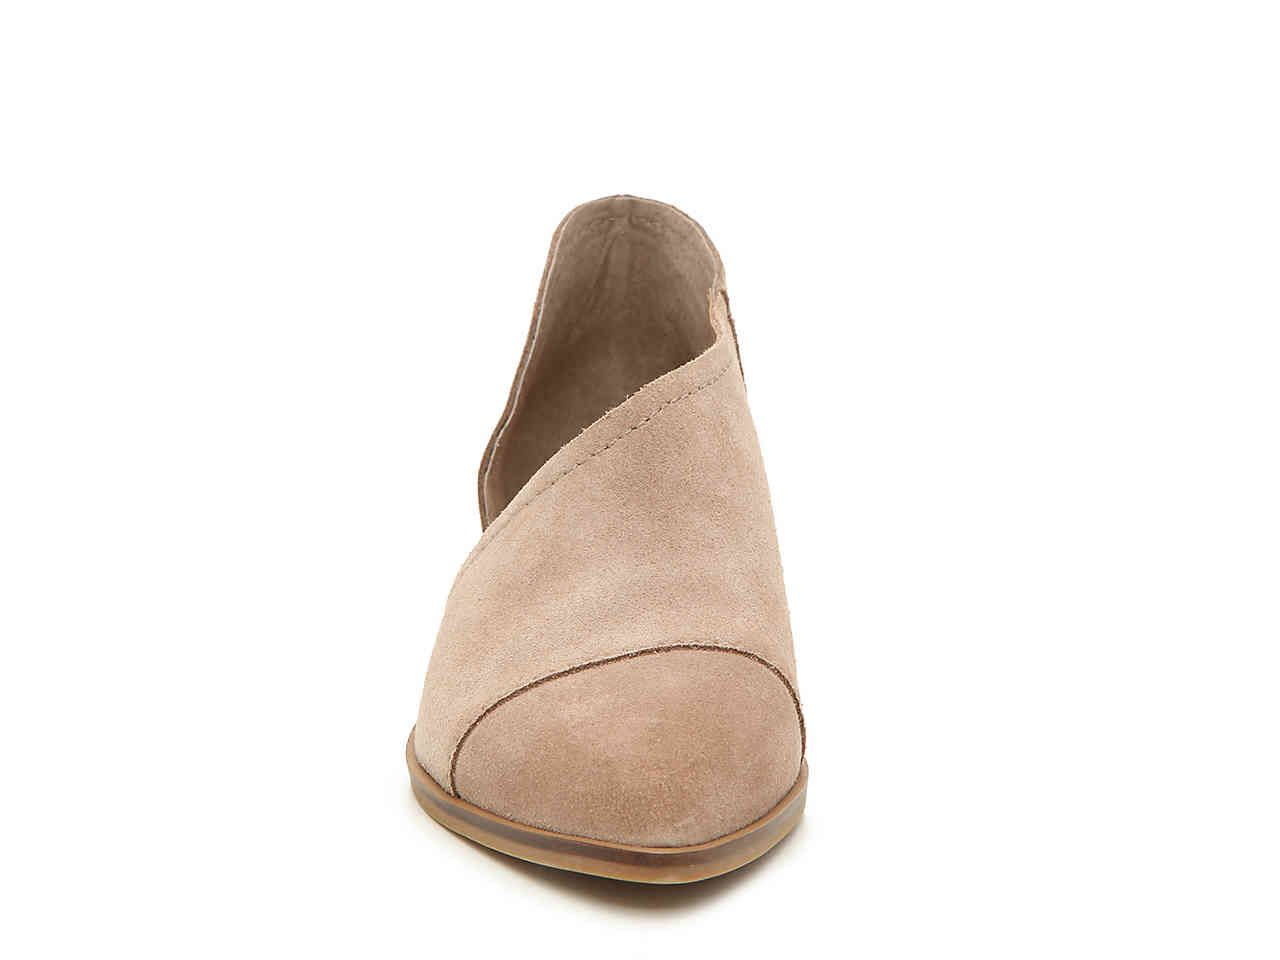 a1313849b49 Crown Vintage Shay Flat Women's Shoes | DSW | shoes in 2019 | Shoes ...